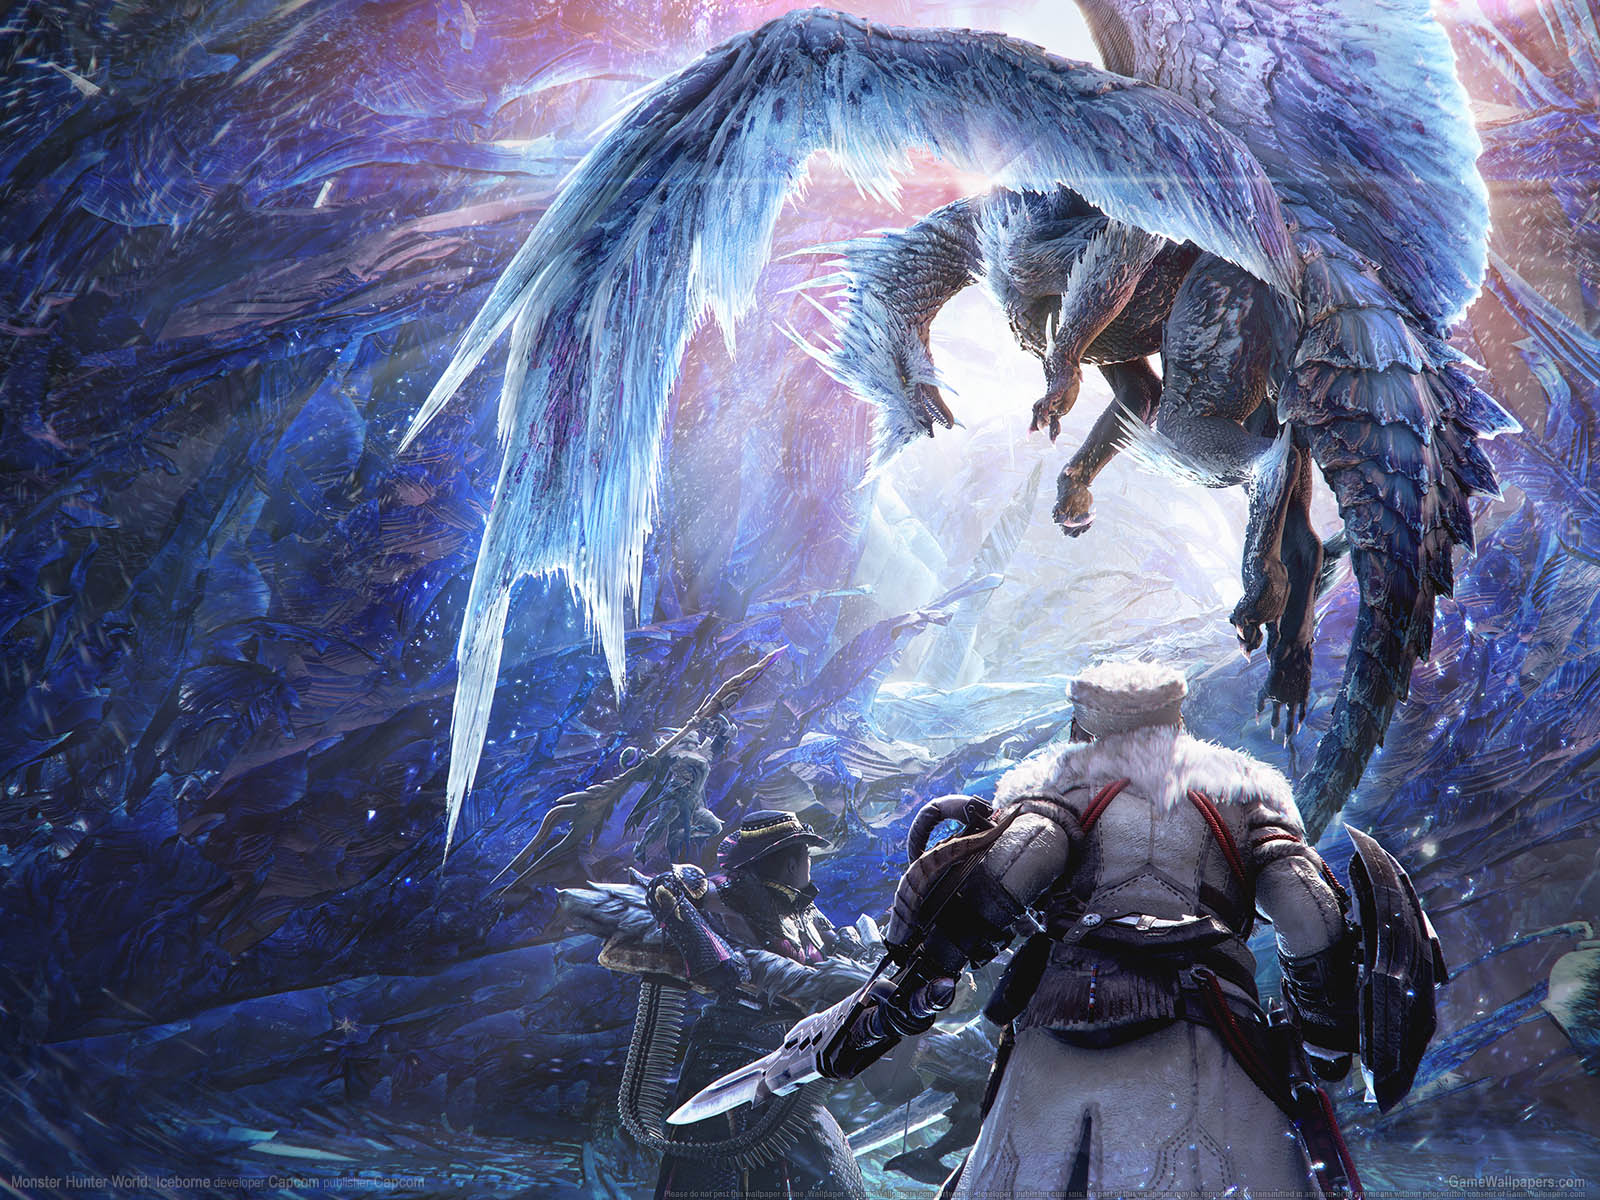 Monster Hunter World: Iceborneνmmer=01 wallpaper  1600x1200